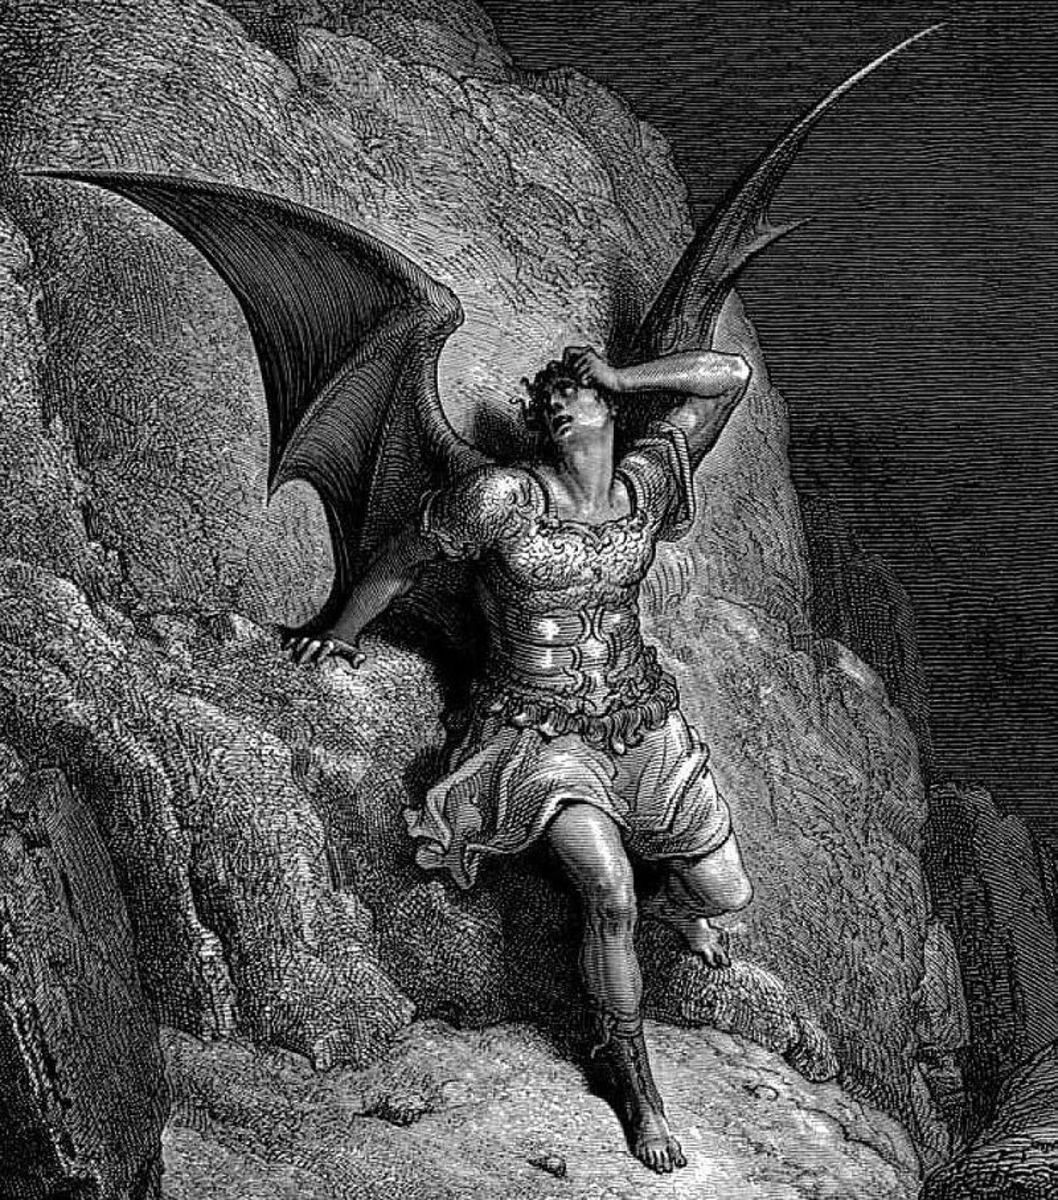 Lucifer - Paradise Lost (Gustave Dore 1832-1883)